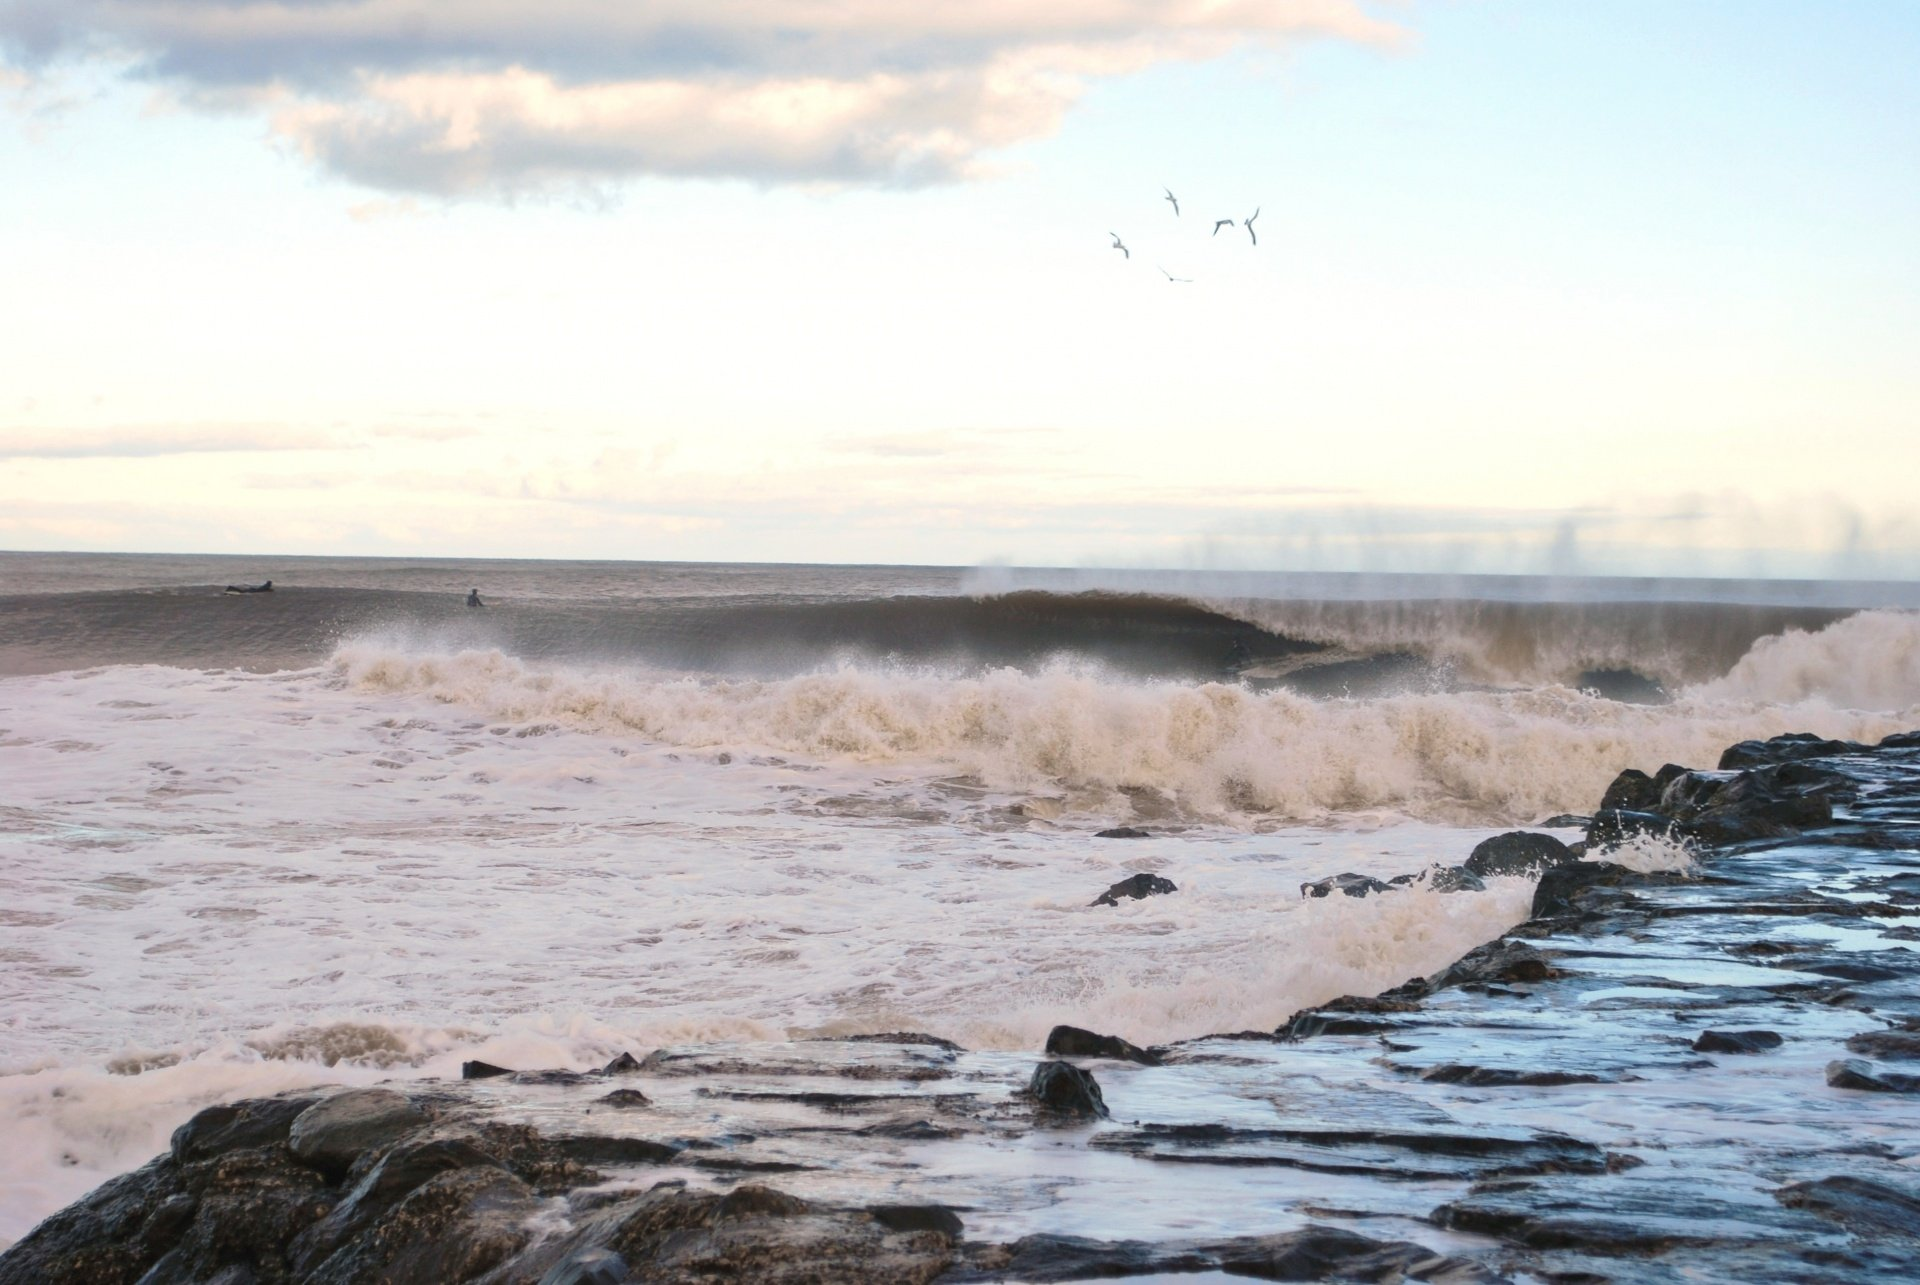 TimLeopold's photo of Asbury Park